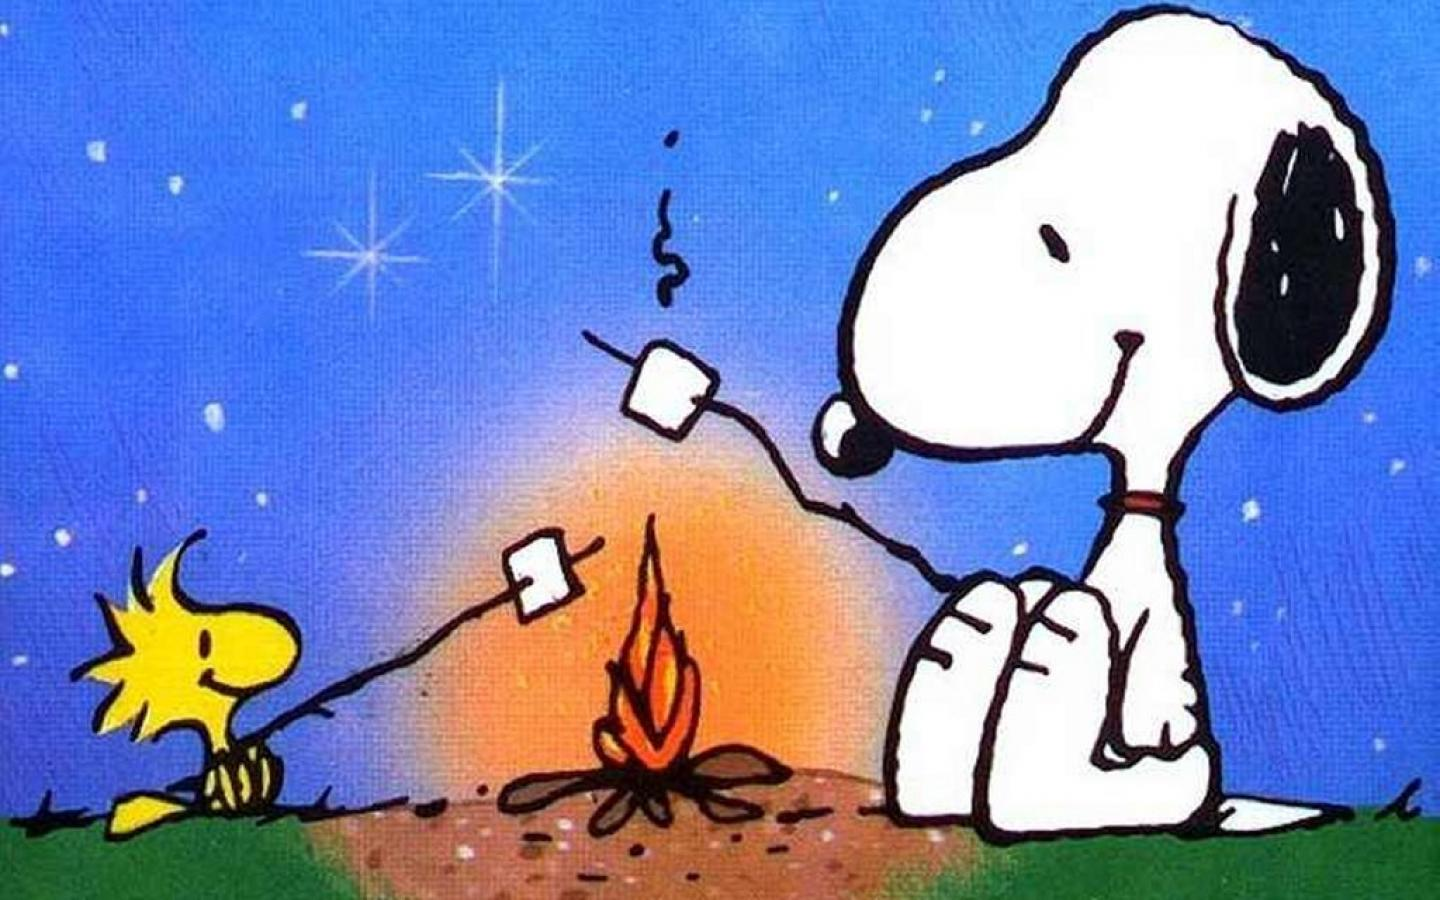 cir snoopys campfire stories - HD 1440×900